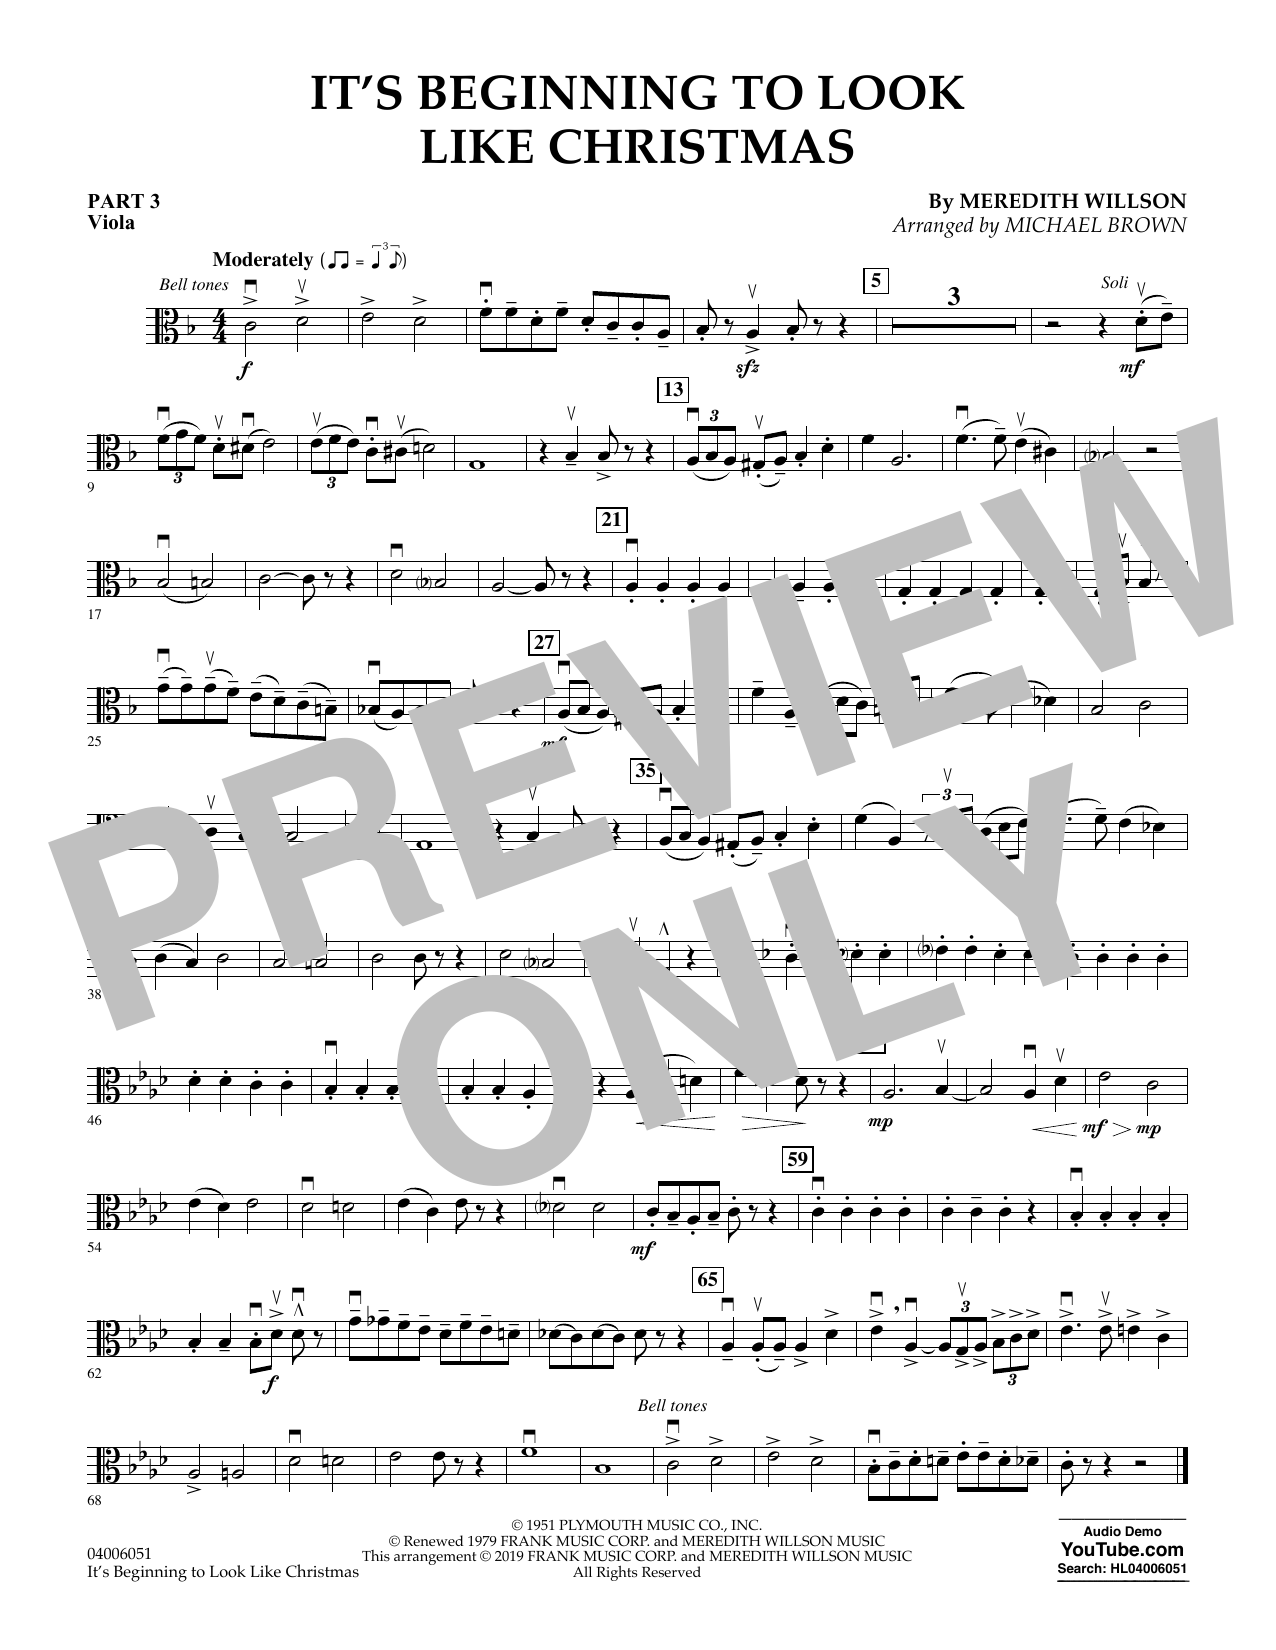 It's Beginning to Look Like Christmas (arr. Michael Brown) - Pt.3 - Viola (Flex-Band)